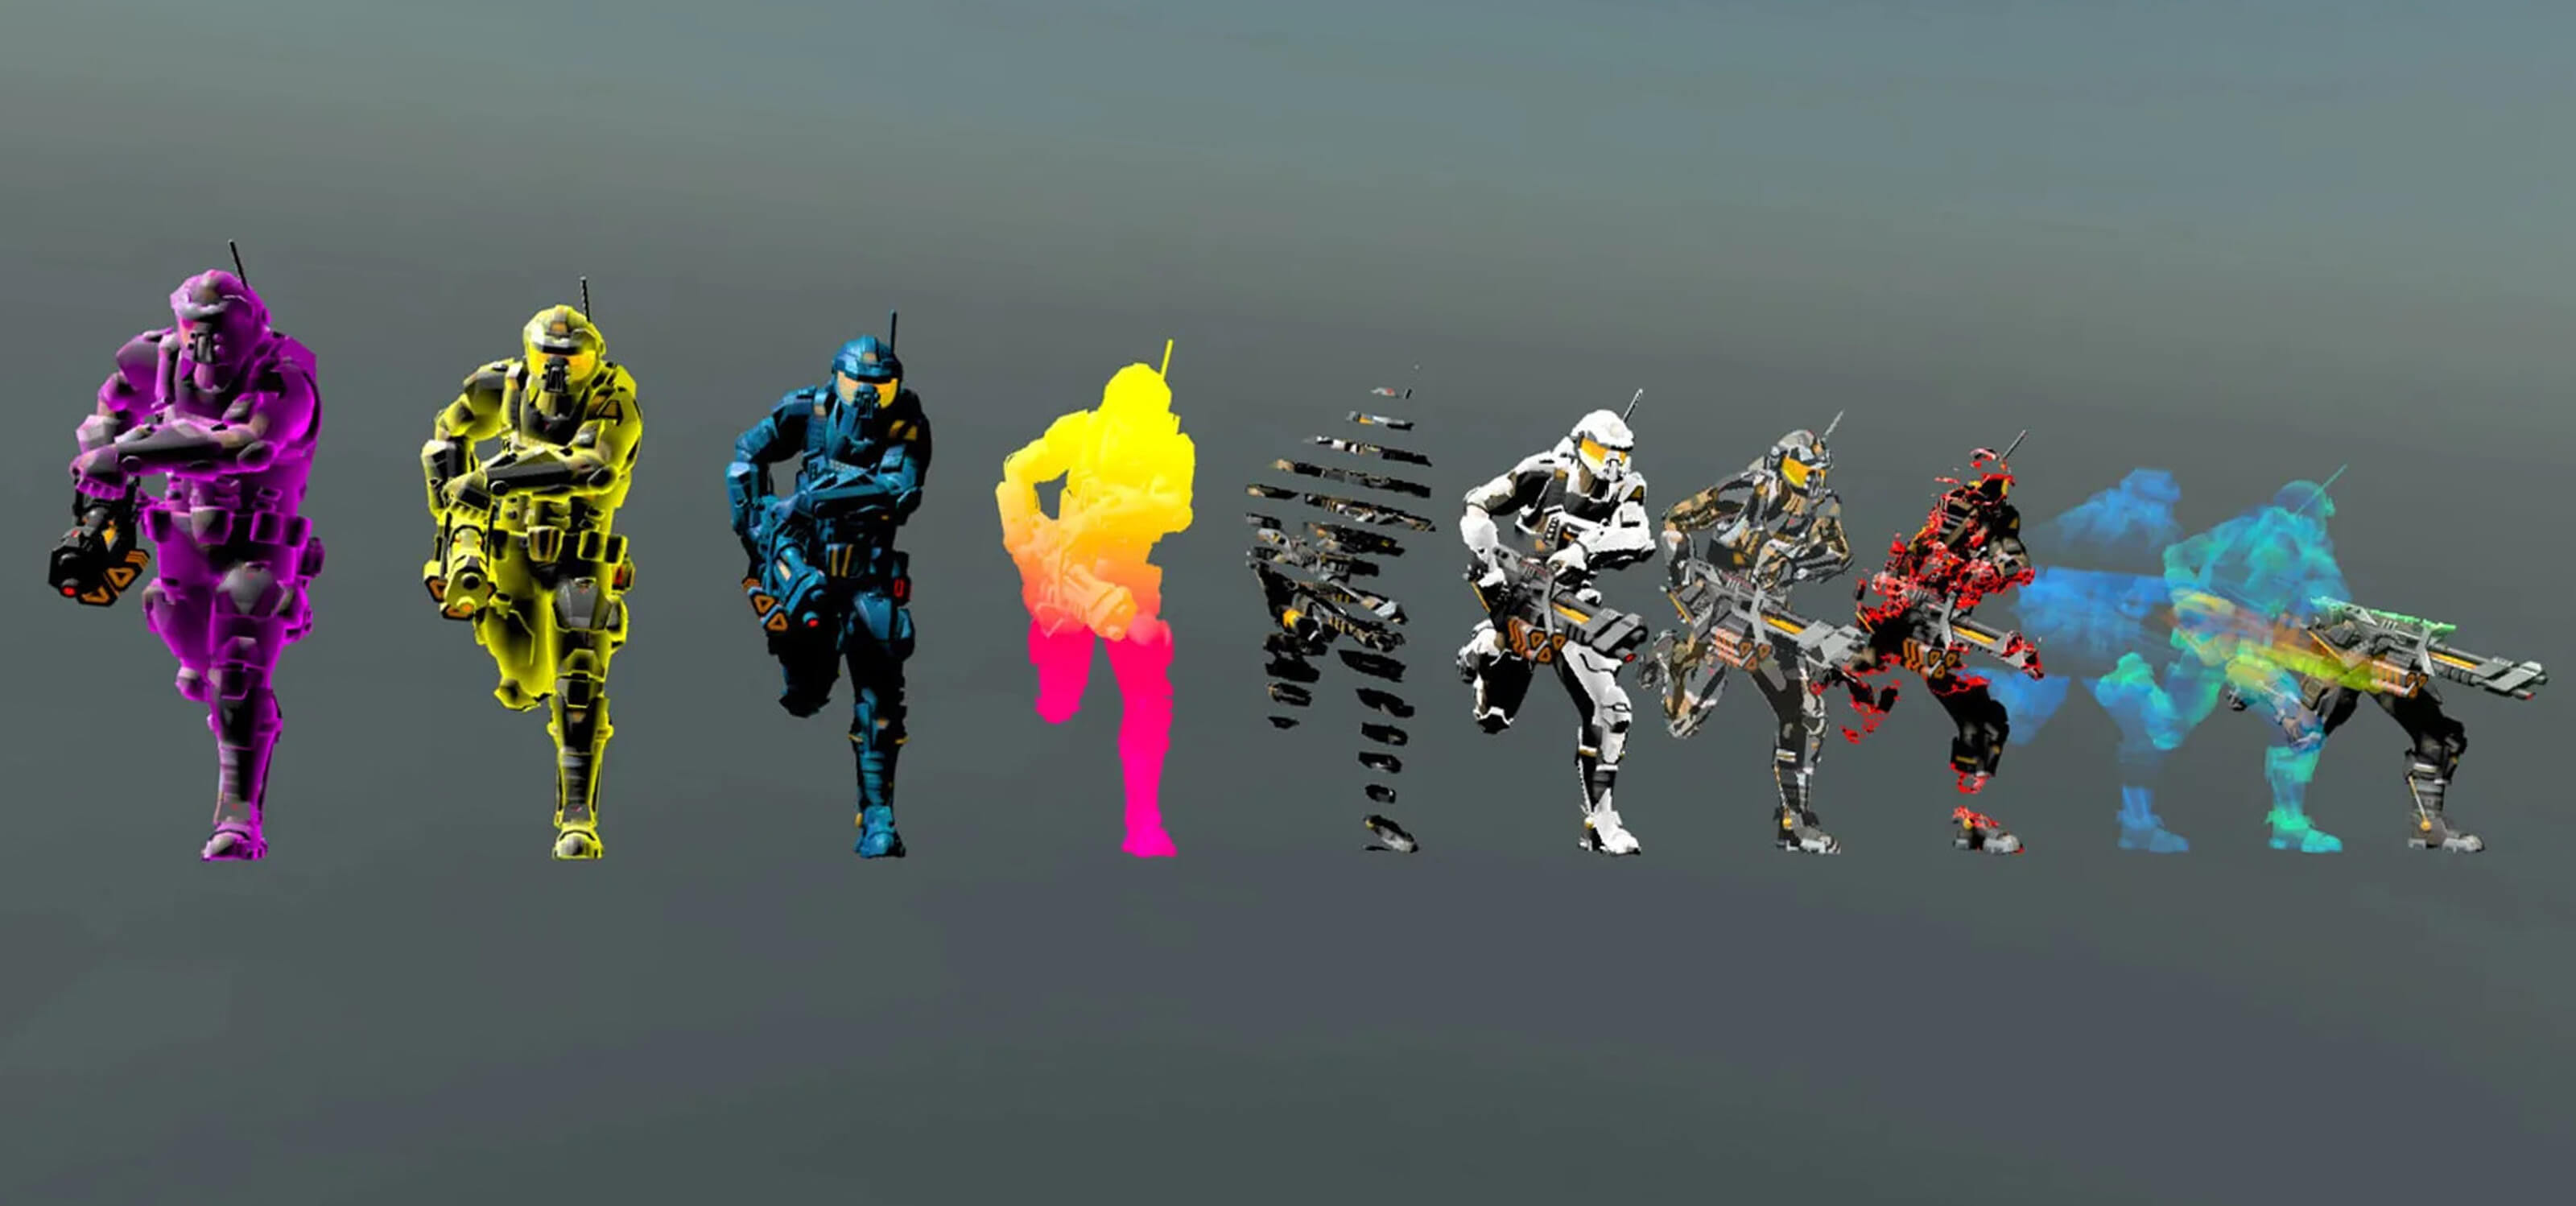 A demonstration of different Unity Shader Graph effects applied to the same sci-fi character model.